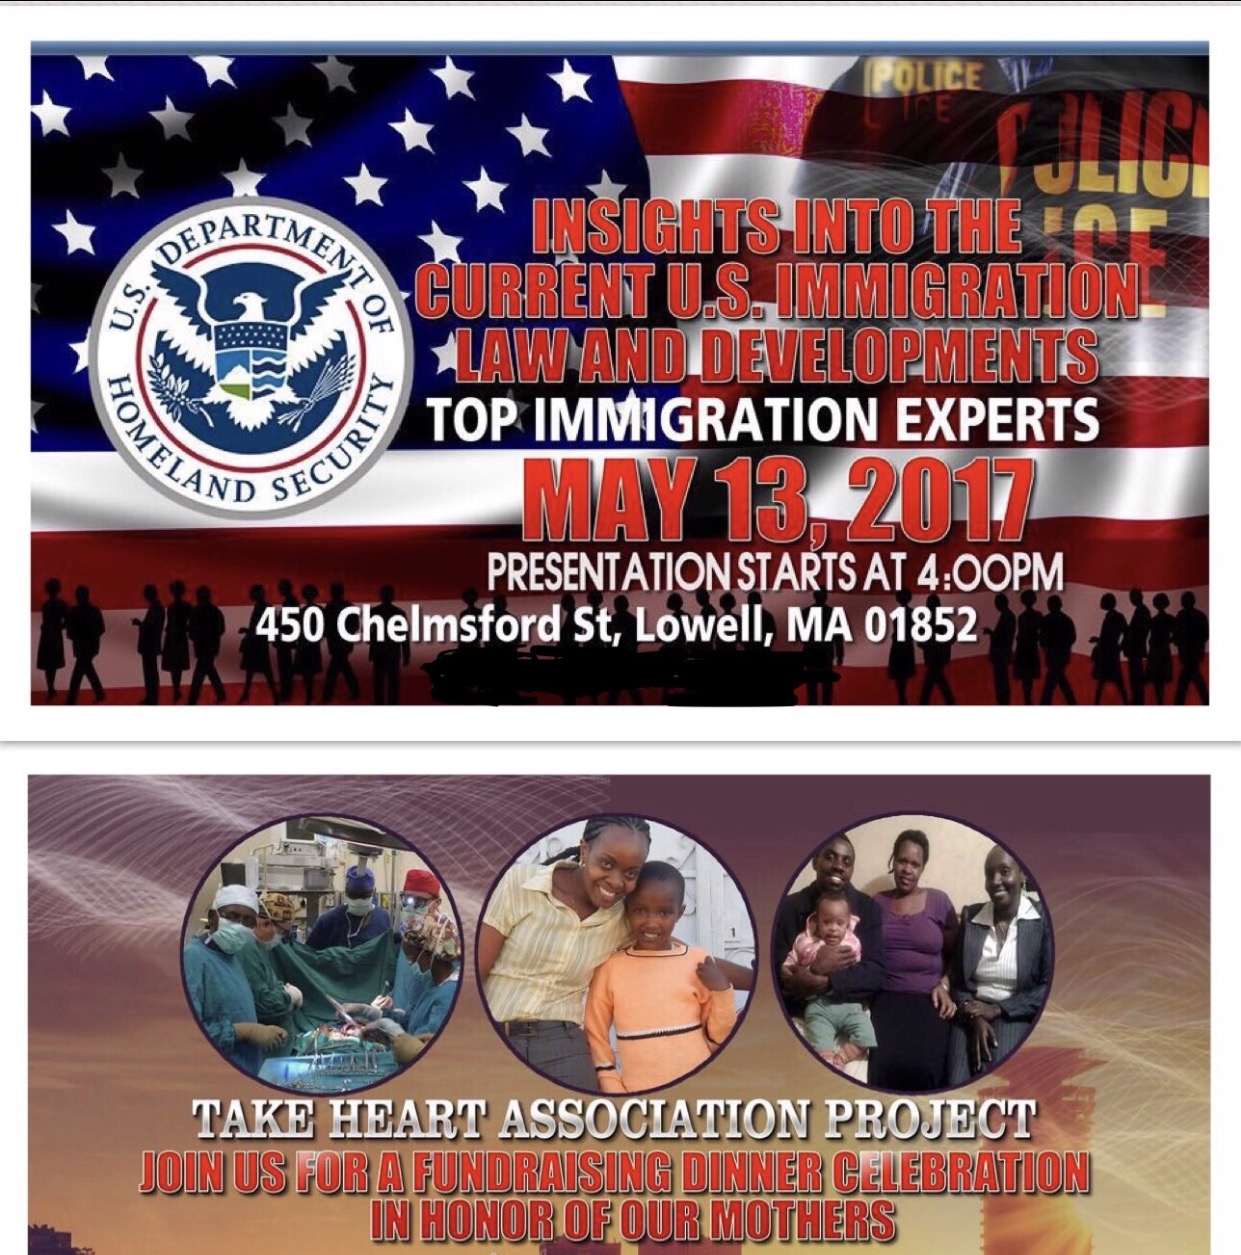 IMMIGRATION INFORMATION SESSION & MOTHER'S DAY CHARITY DINNER